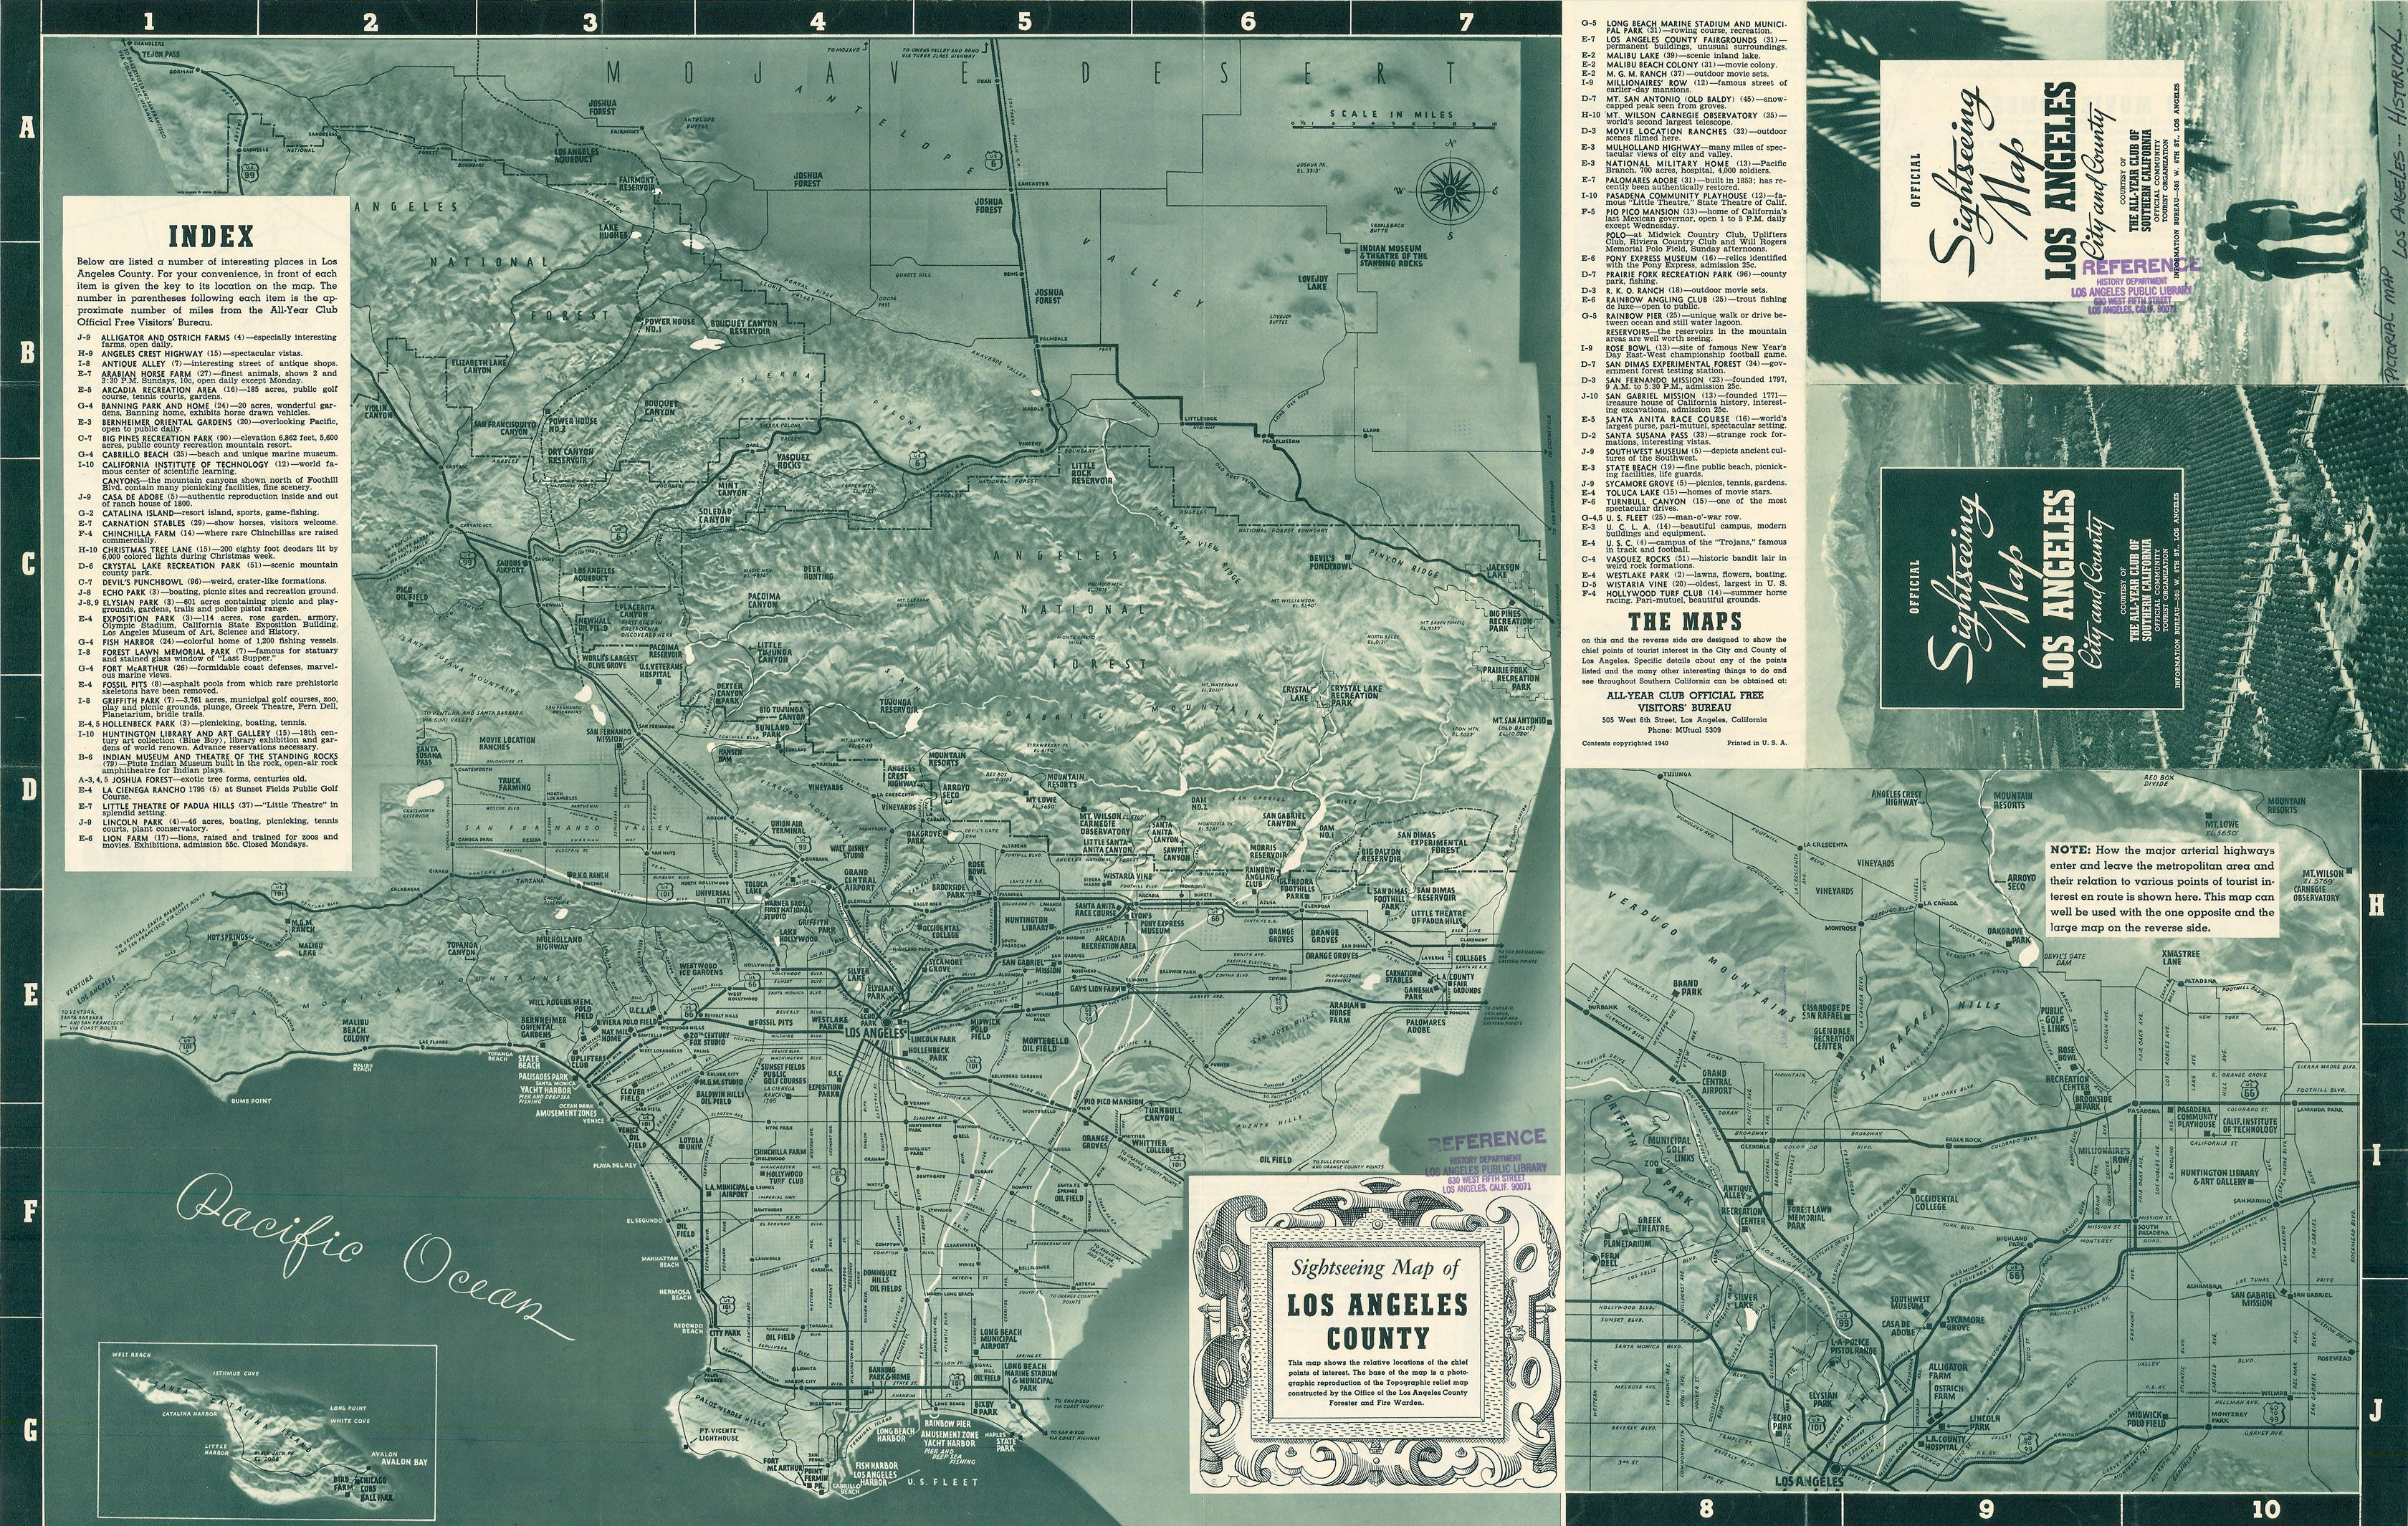 ficial Sightseeing Map Los Angeles City and County 1940